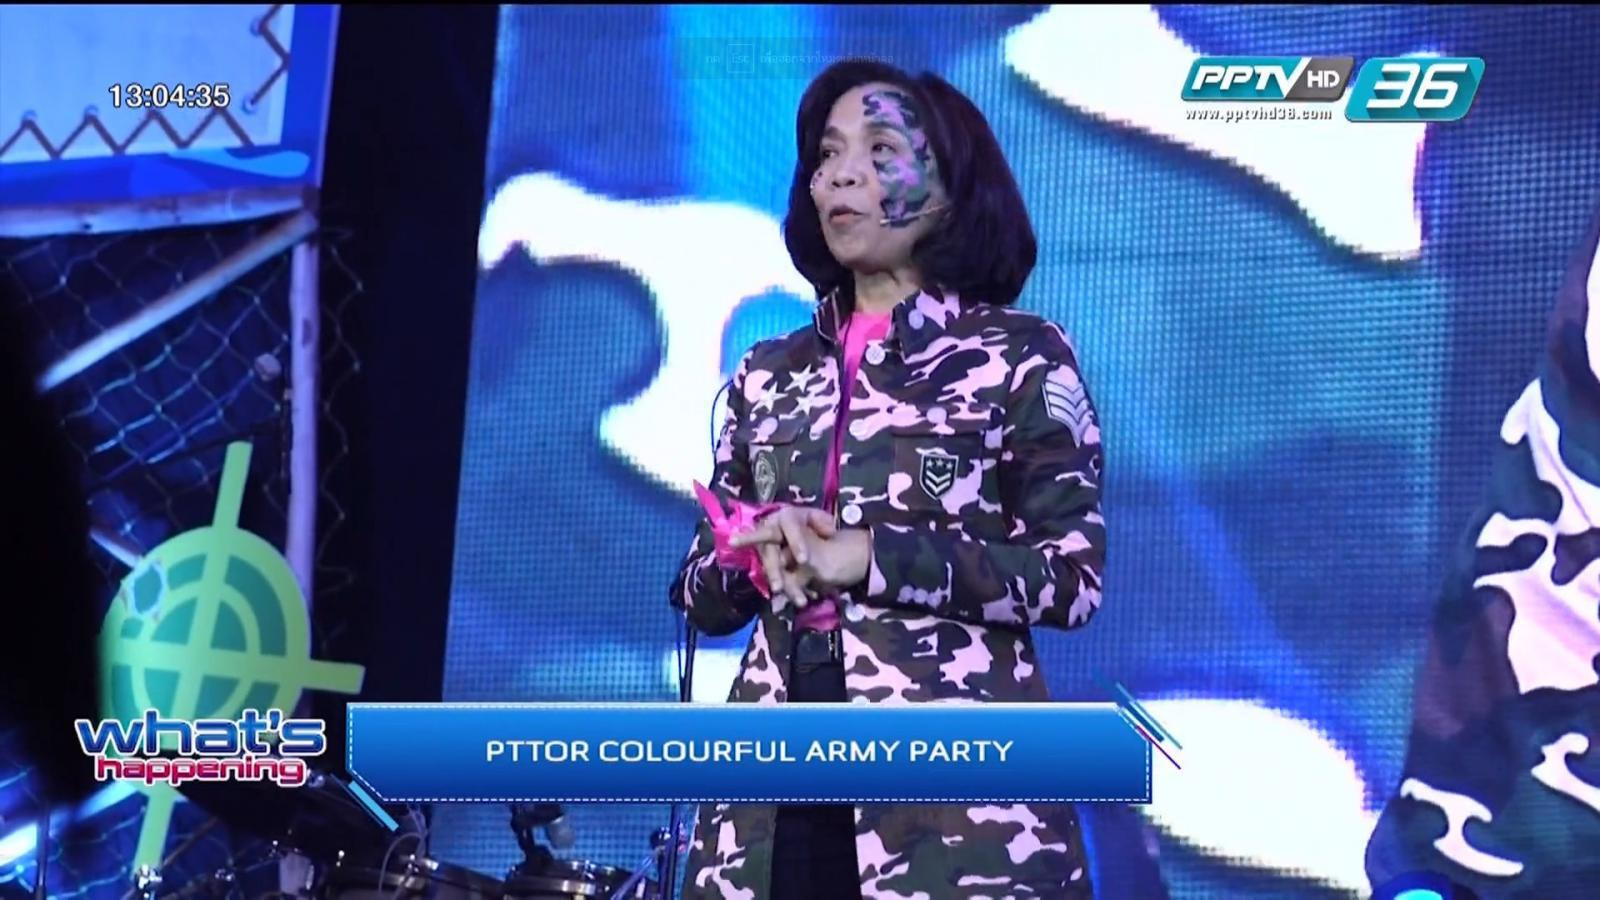 PTTOR COLOURFUL ARMY PARTY